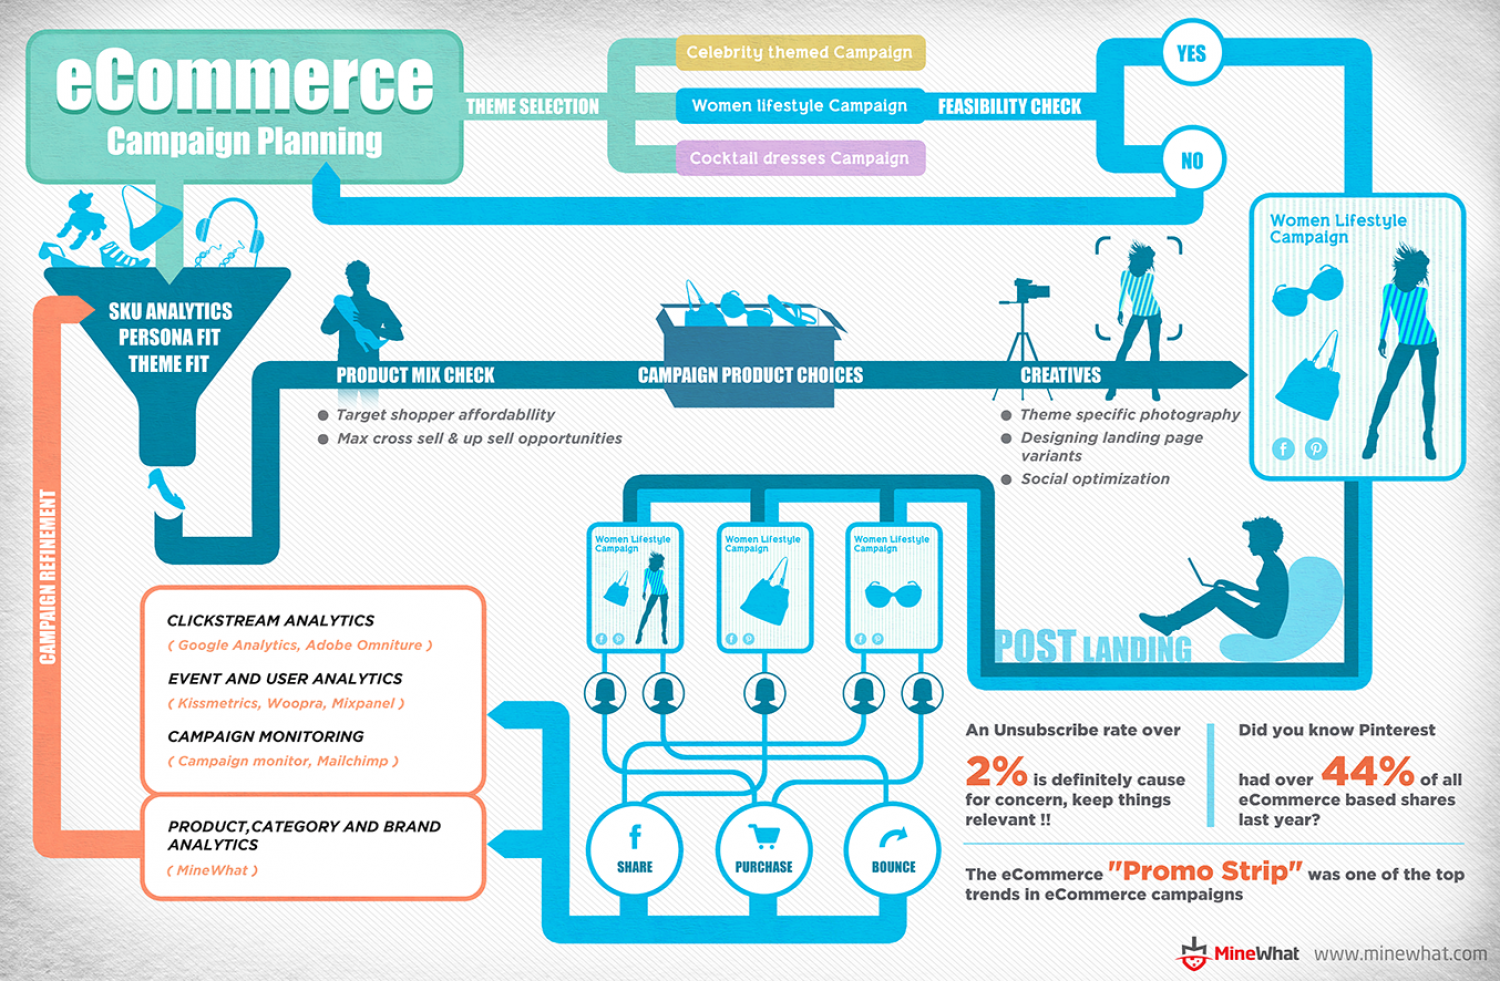 eCommerce: Campaign Marketing Infographic